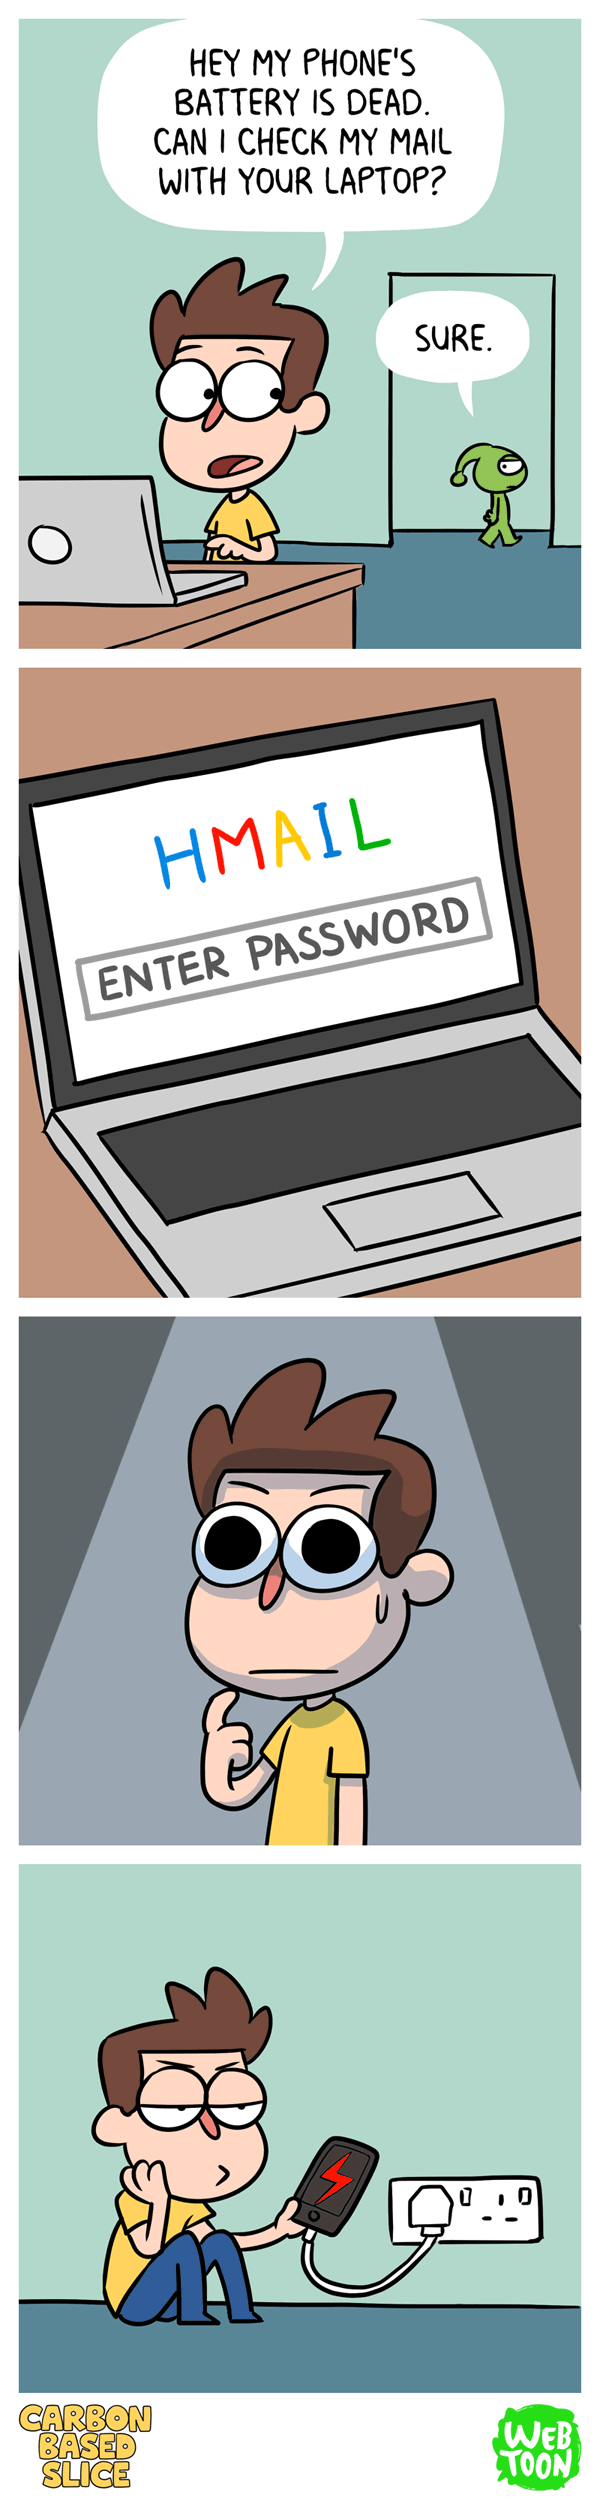 email,passwords,web comics